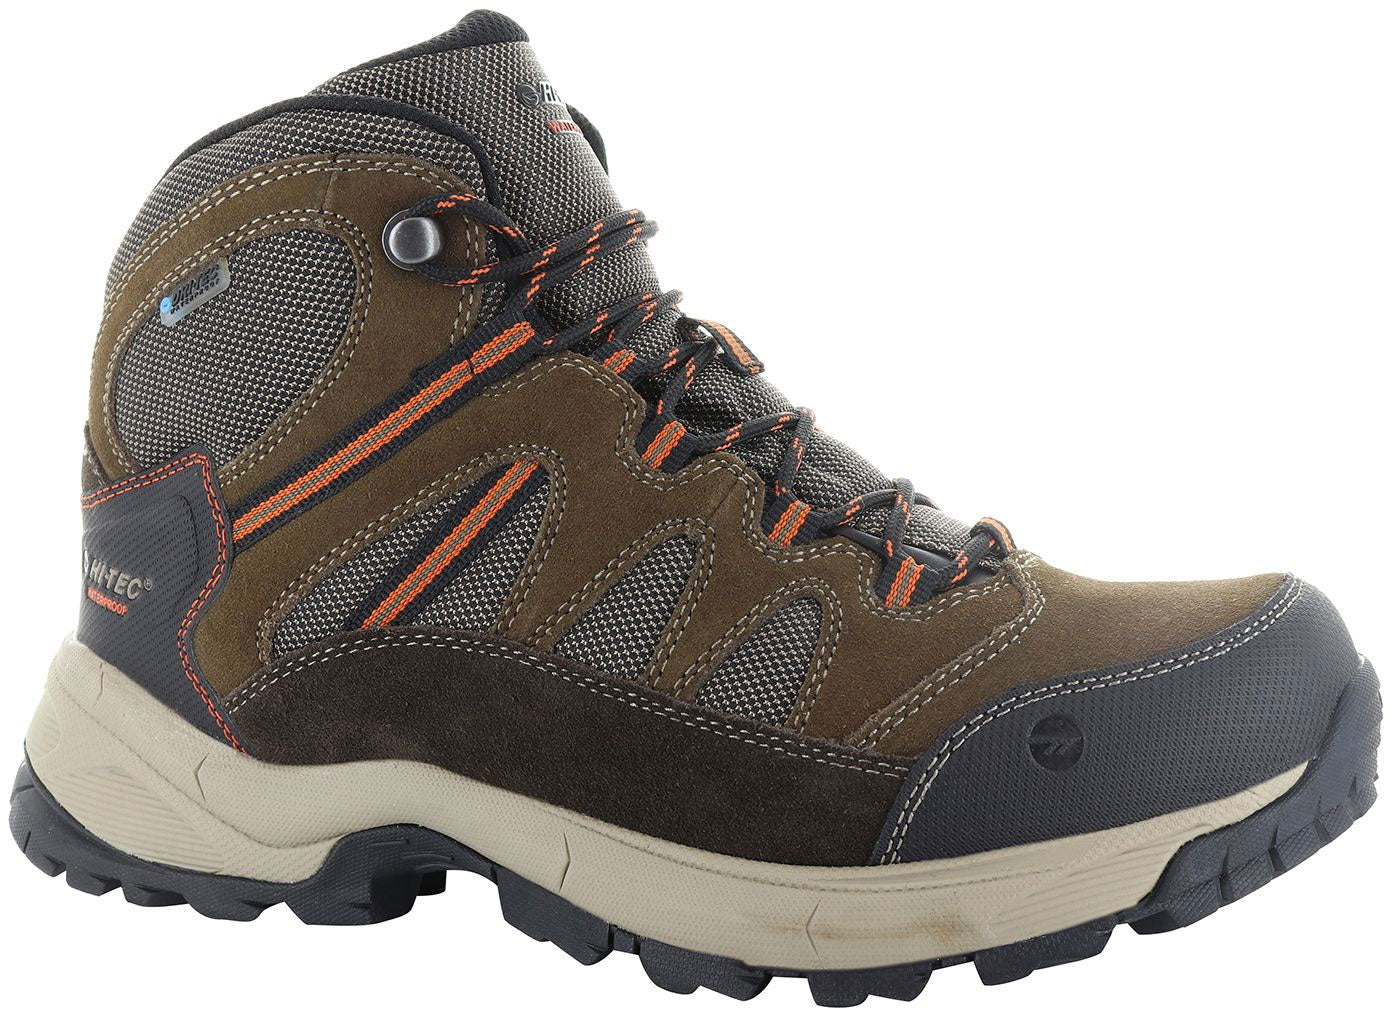 Hi-Tec Bandera Lite Waterproof Hiking Boots in Orange and Chocolate